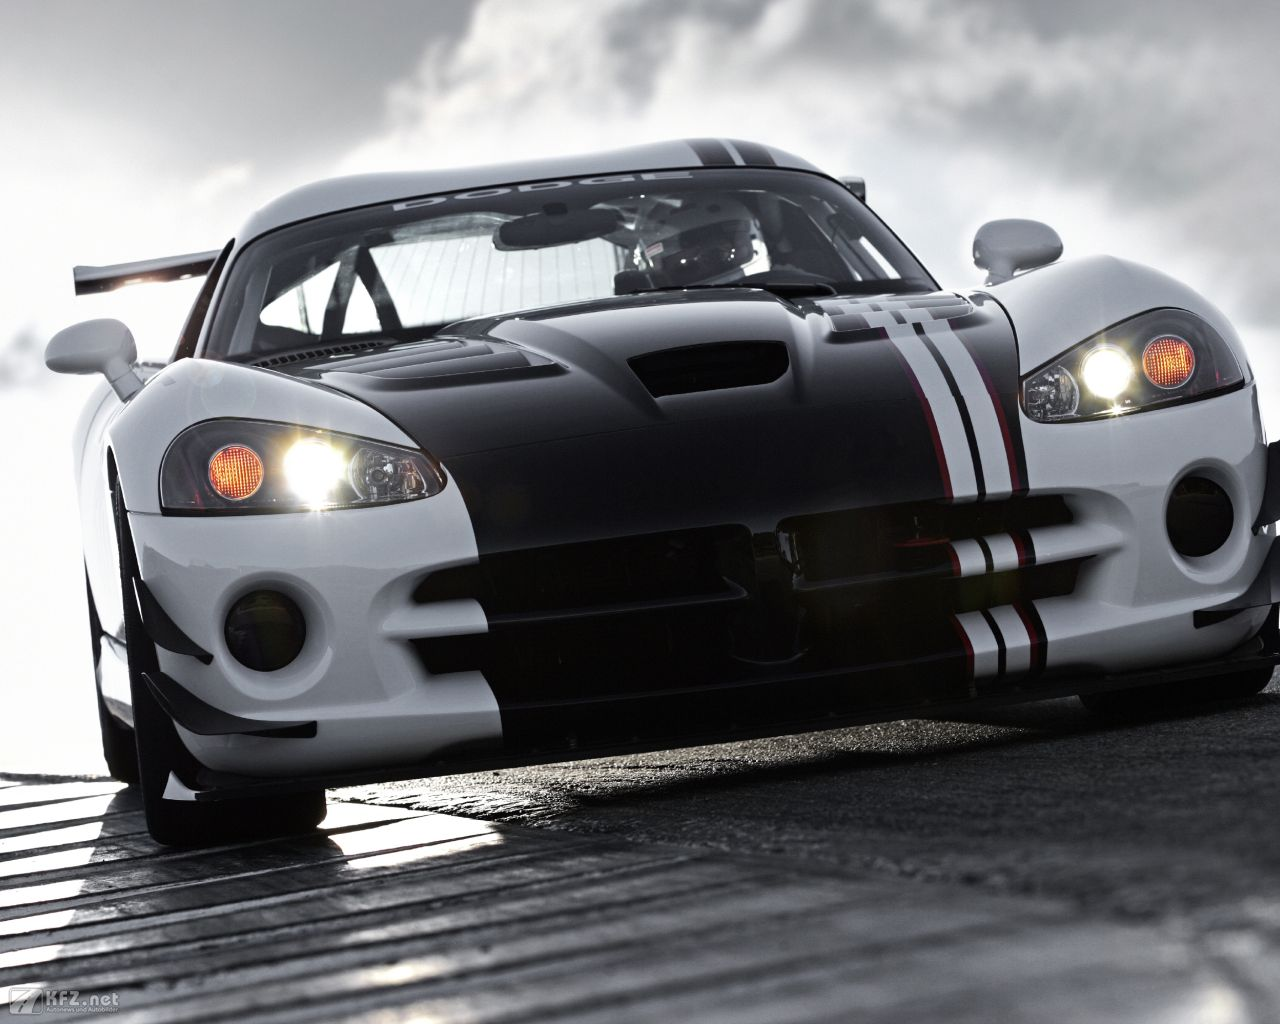 chrysler-dodge-viper-1280x1024-10